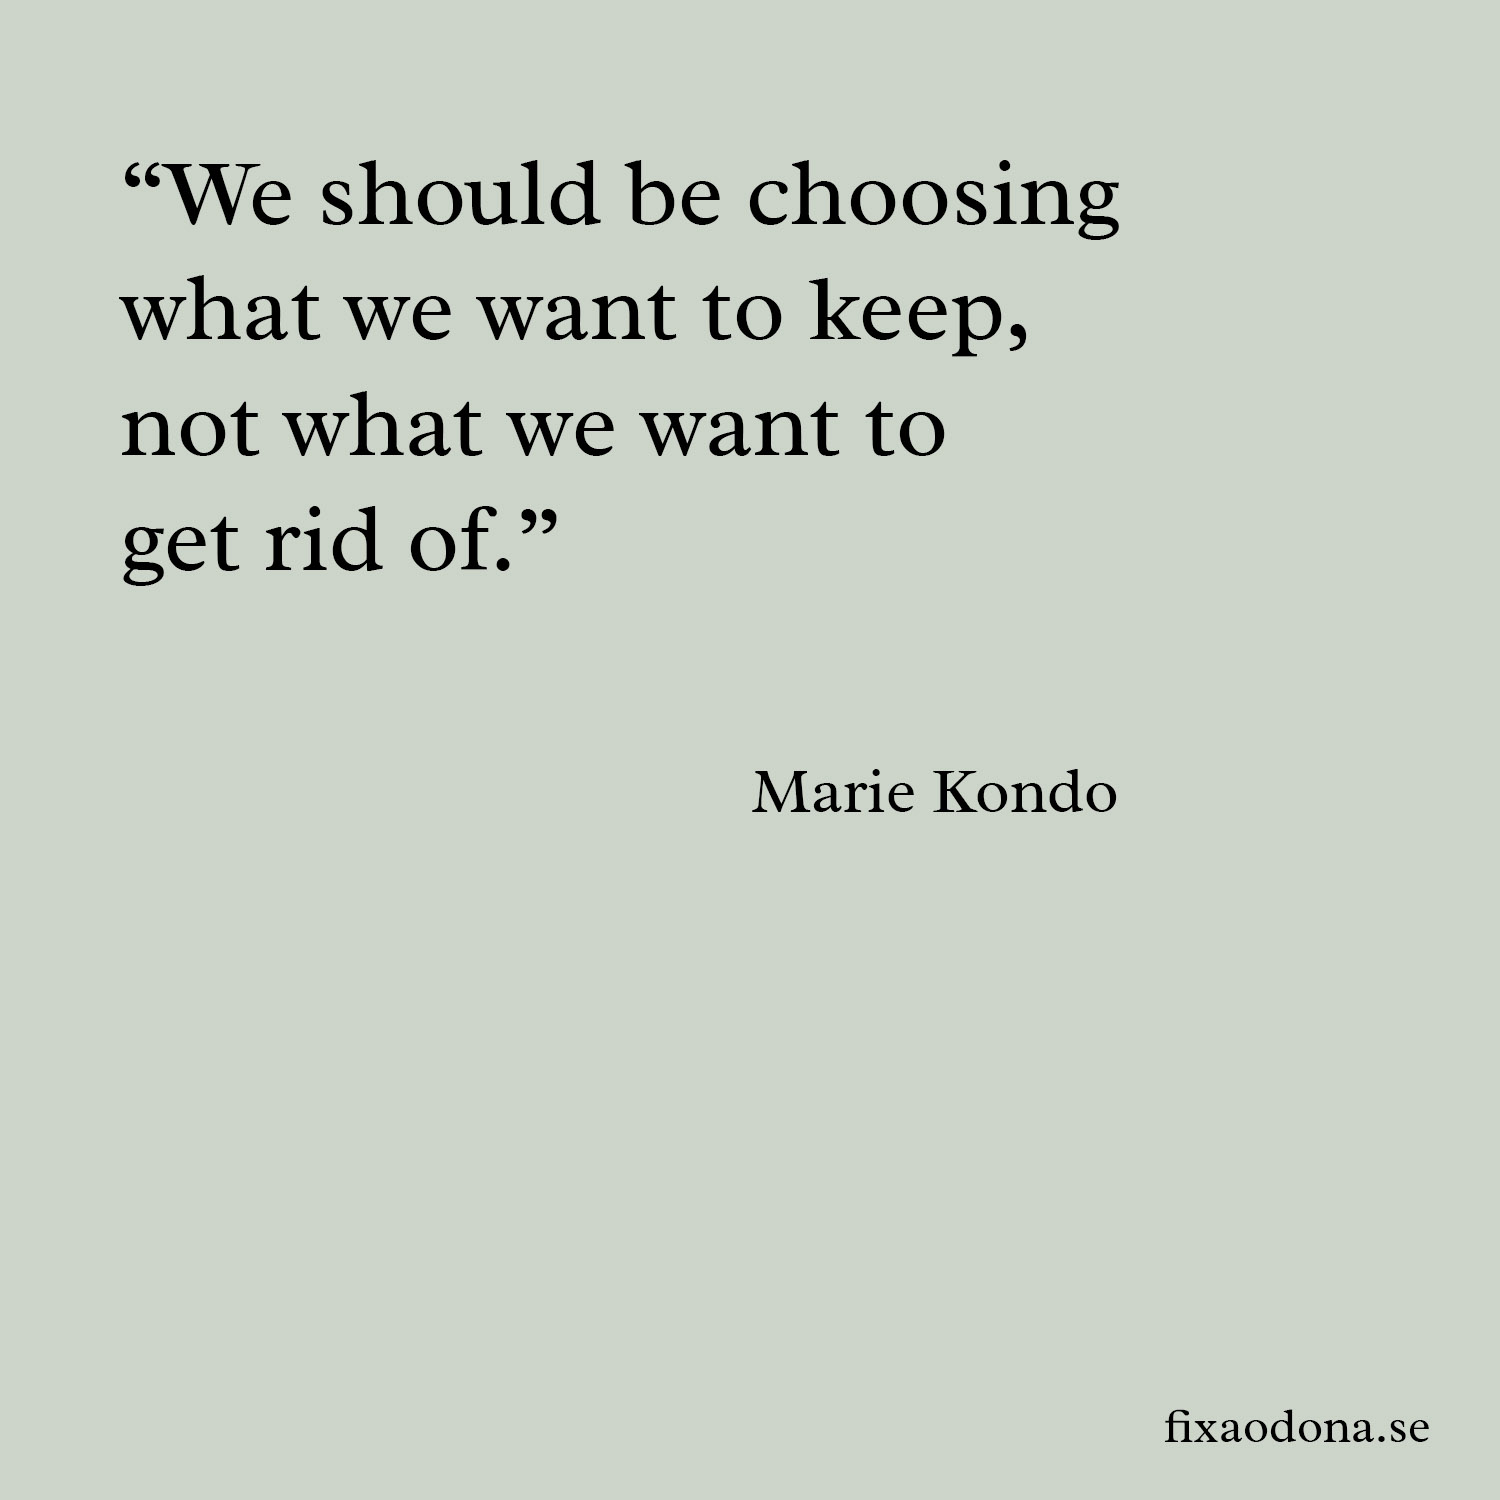 """We should be choosing what we want to keep, not what we want to get rid of"""" - Marie Kondo fixaodona.se"""